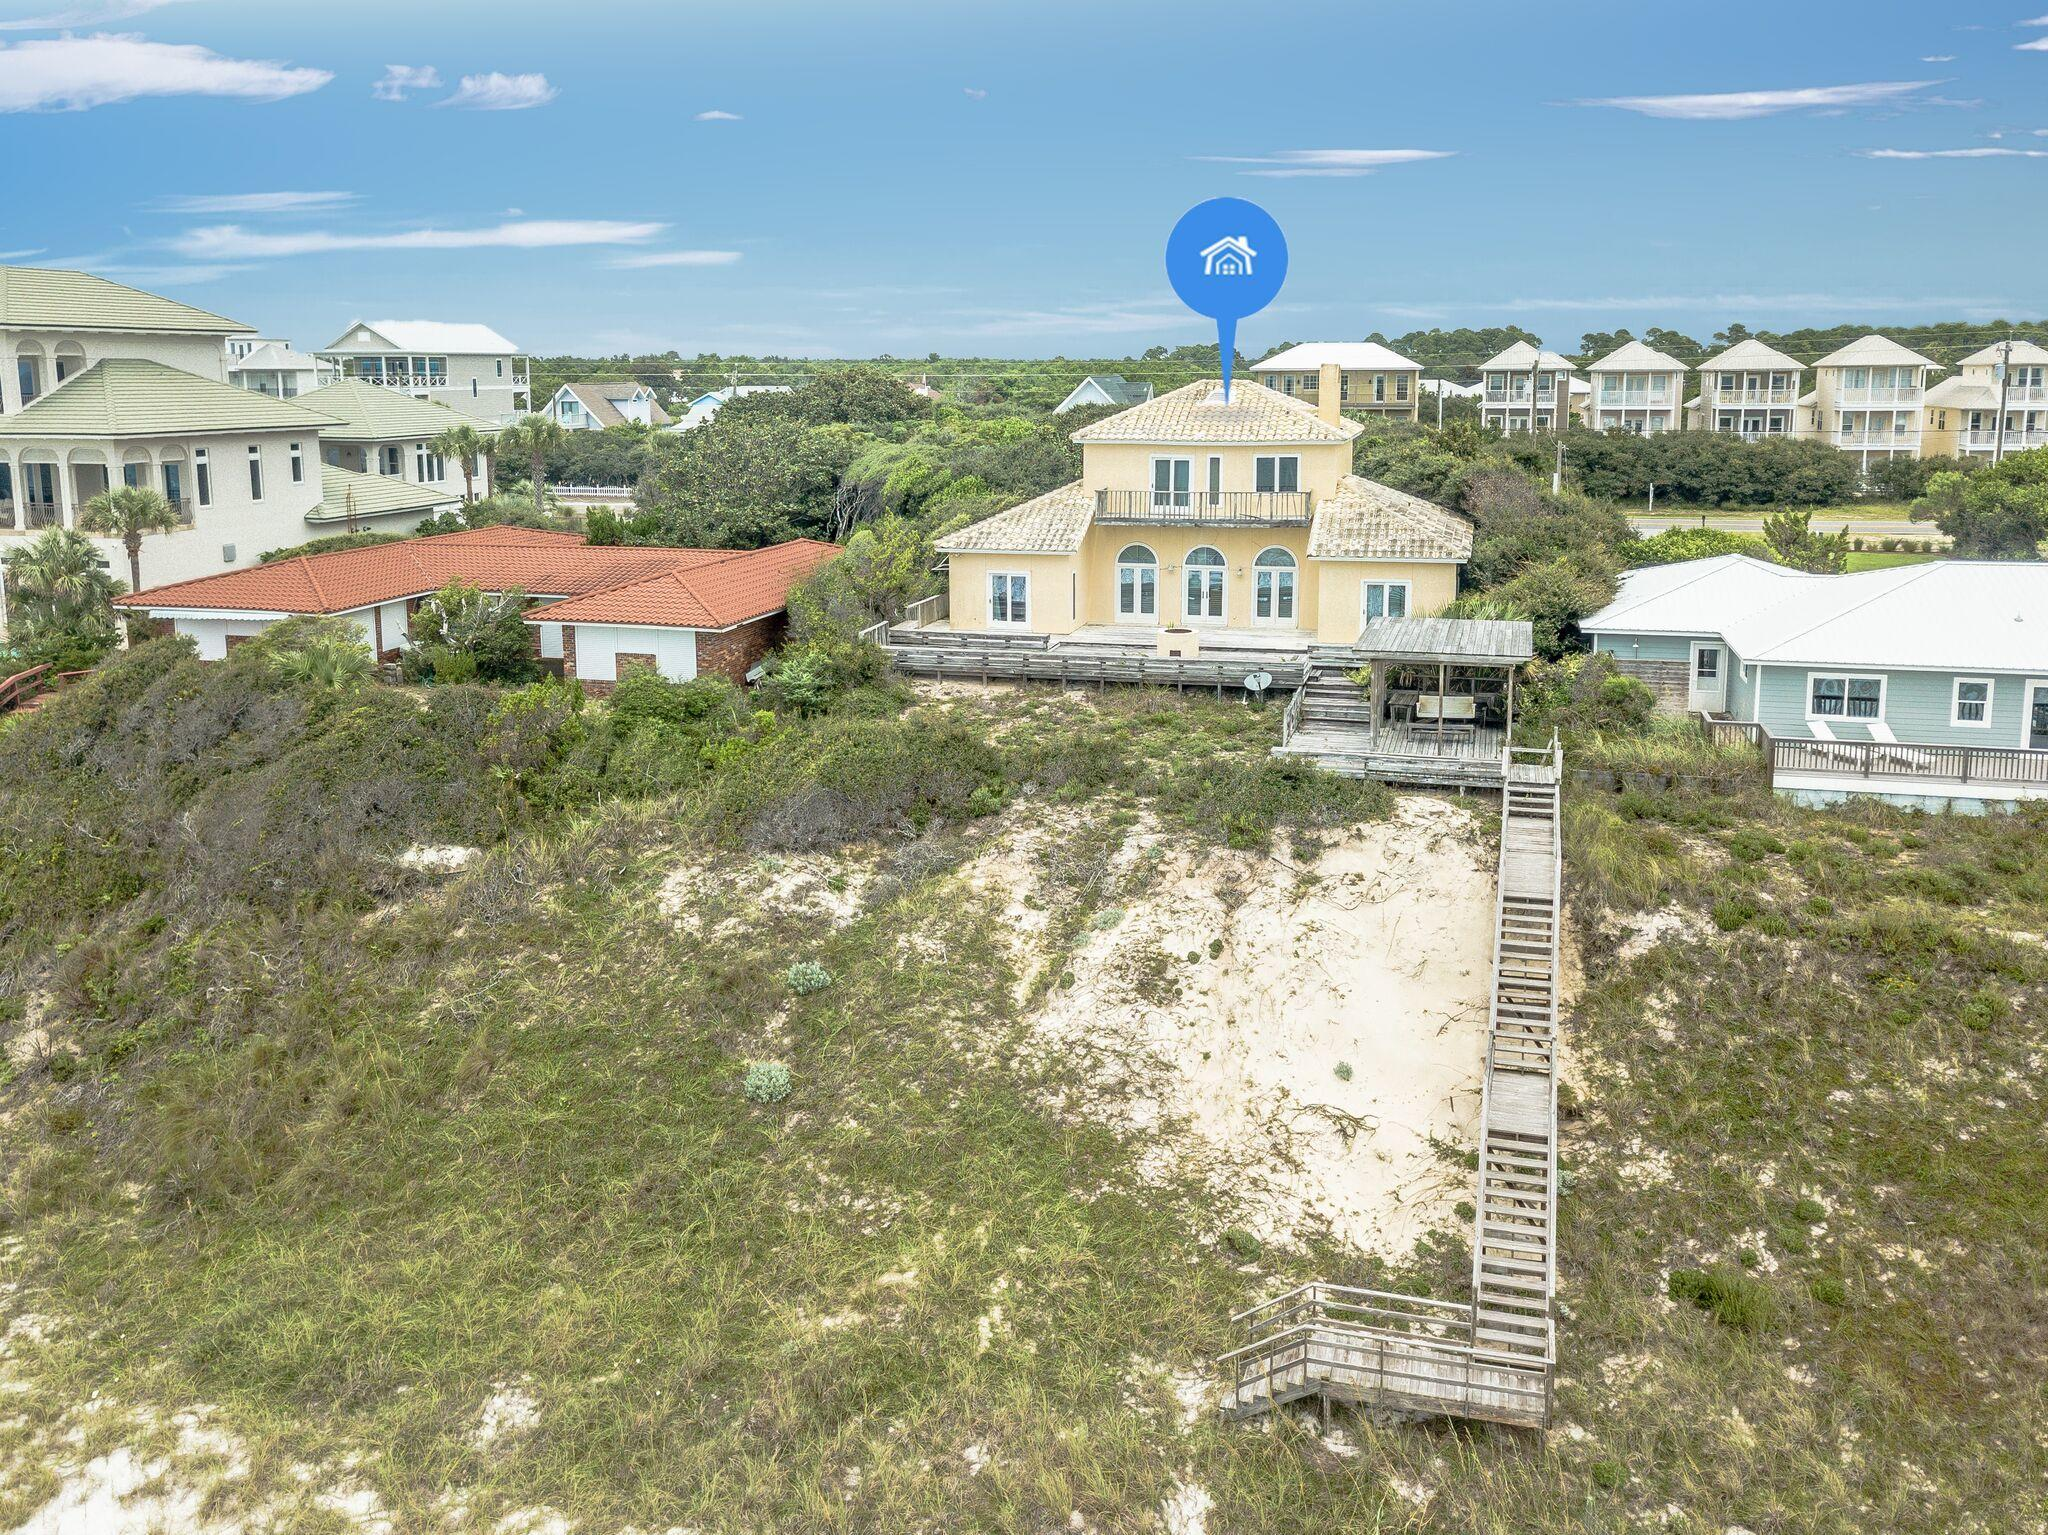 8186 Co Highway 30-A,Inlet Beach,Florida 32461,3 Bedrooms Bedrooms,3 BathroomsBathrooms,Detached single family,Co Highway 30-A,20131126143817002353000000